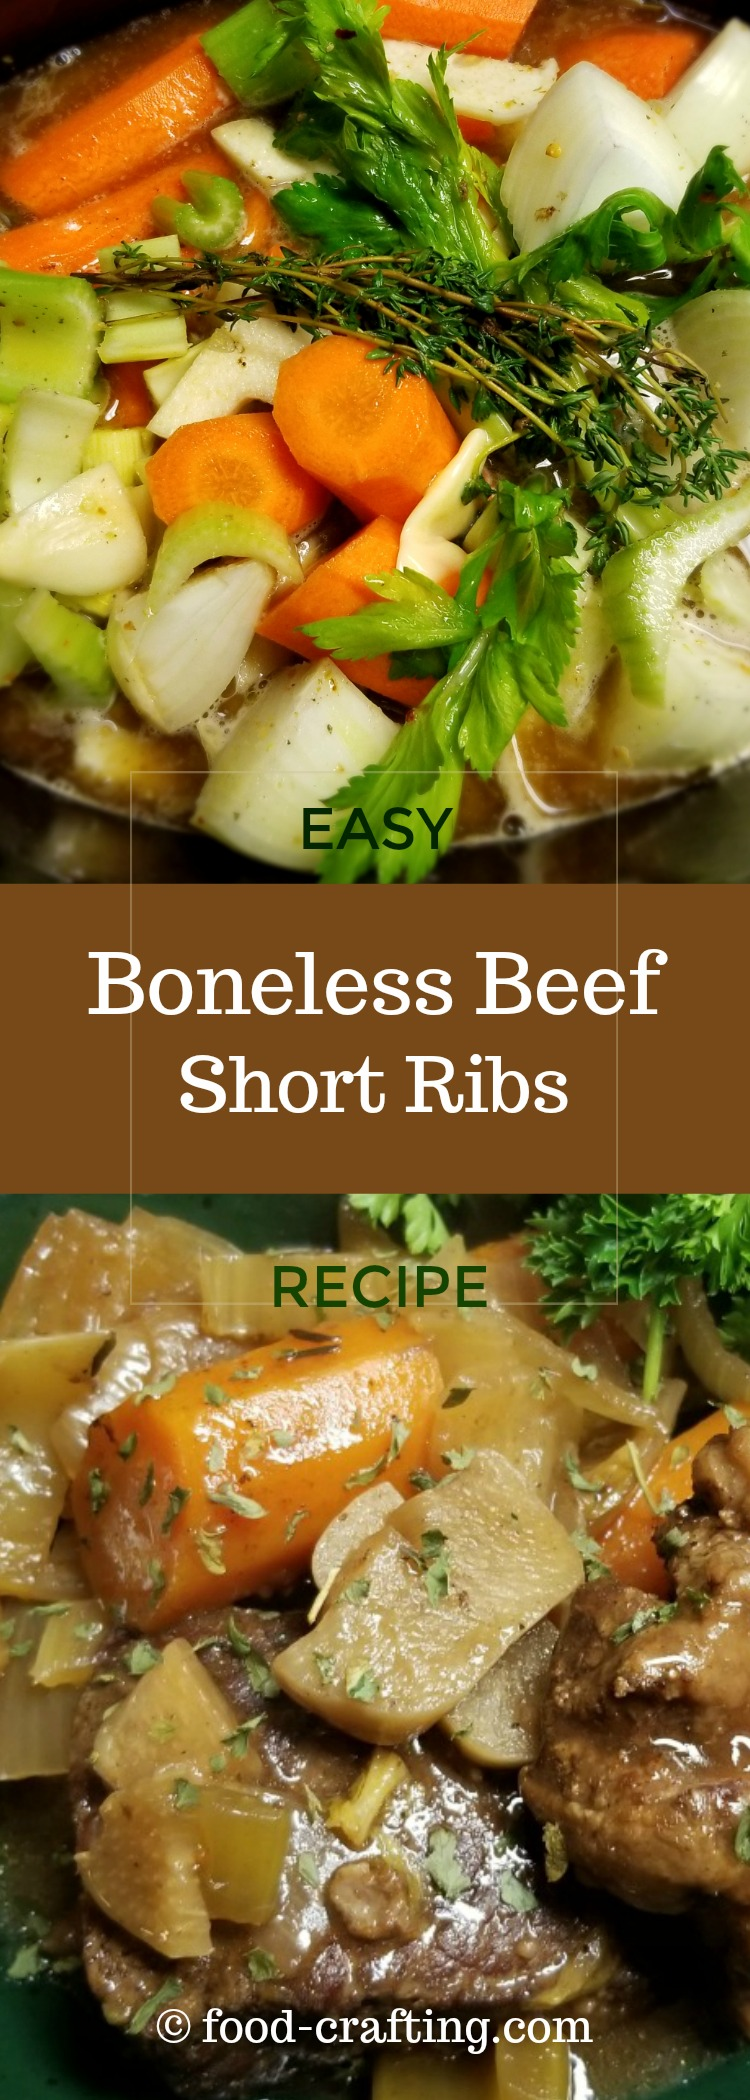 This easy boneless beef short ribs recipe is not exactly lean and mean, with all that butter and all that wine but it sure is easy.  Chop the vegetables while the meat is browning, pour some wine into a pan and add everything to your favorite slow cooker.  You've got 6 hours to multi-task. Enjoy the day!